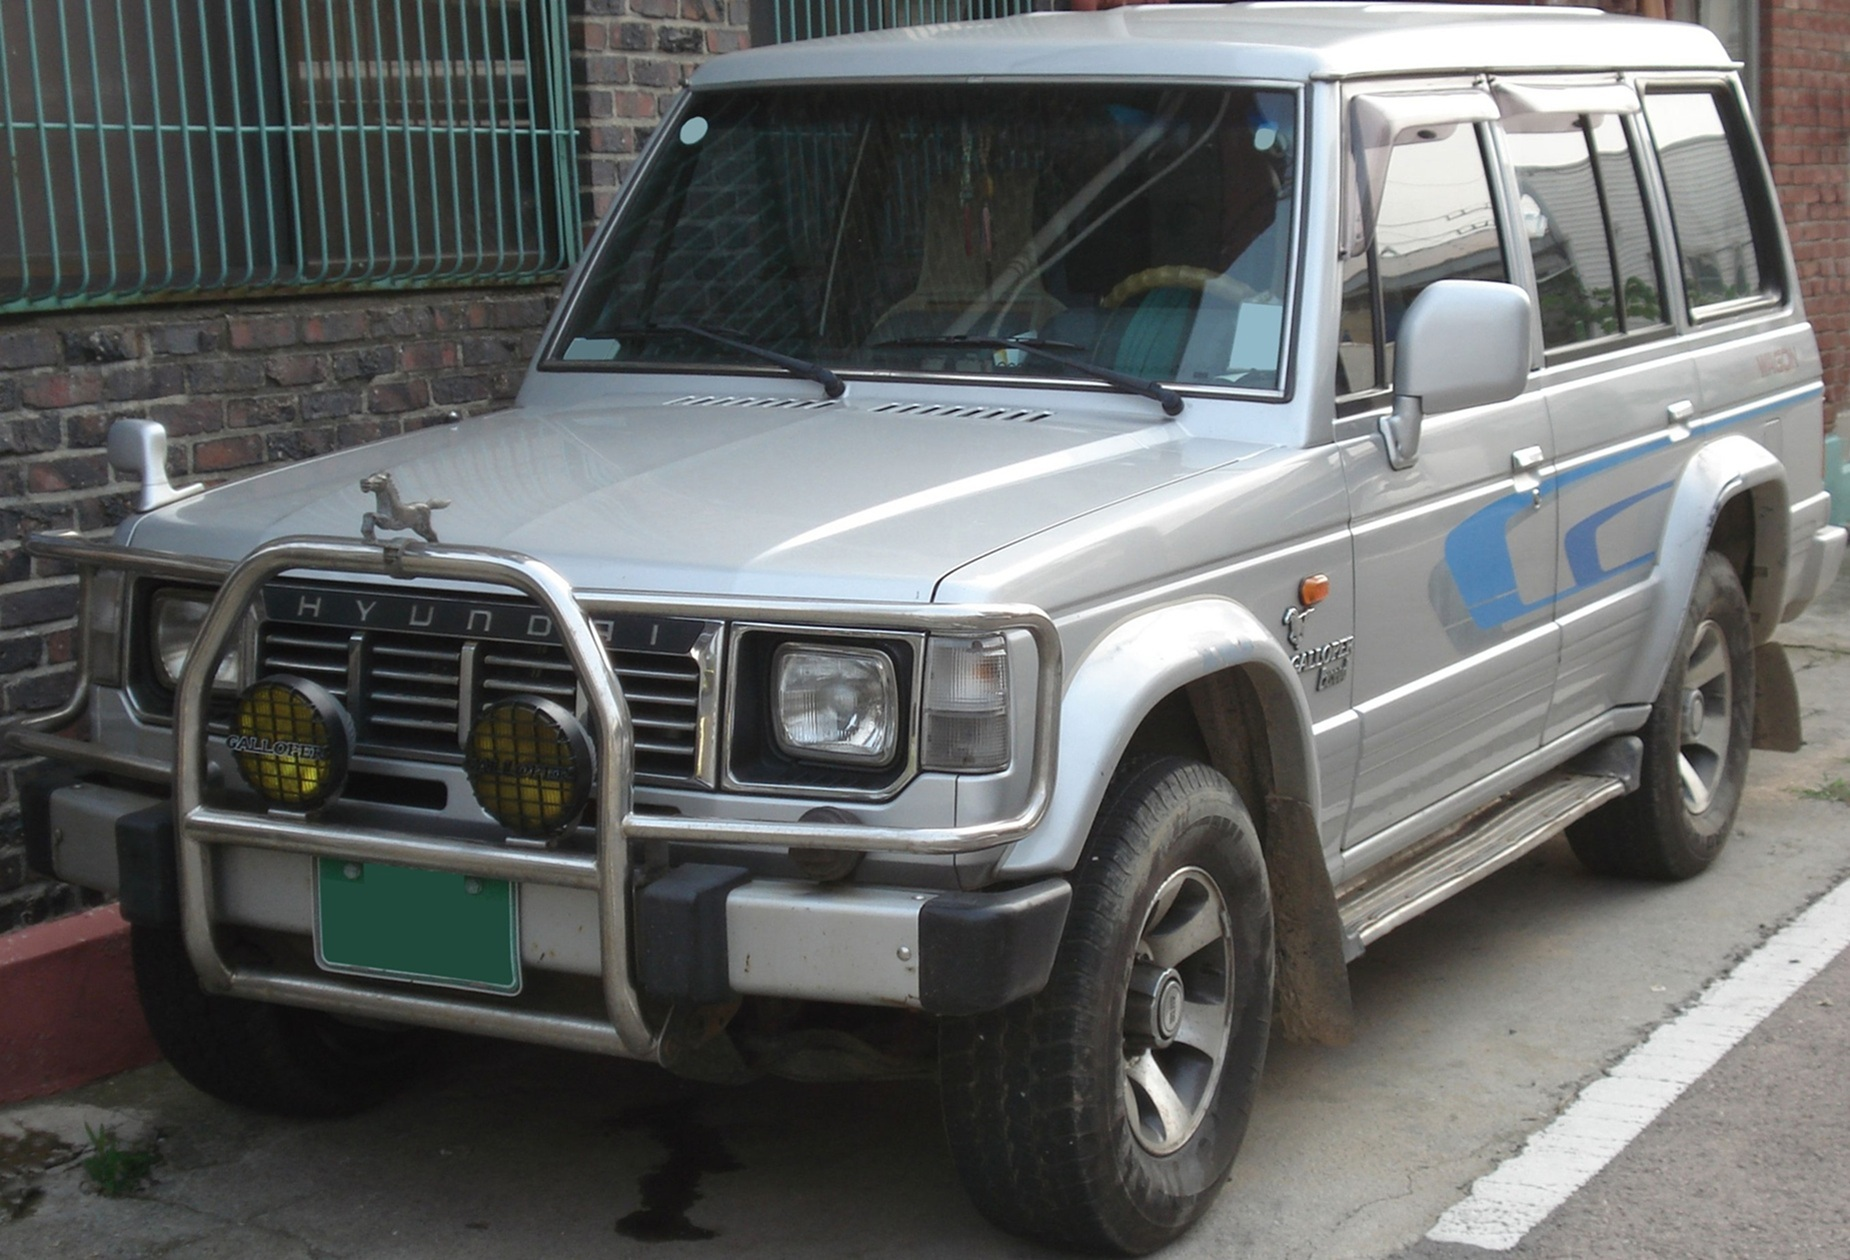 hyundai galloper 1991 2003 suv 5 door outstanding cars rh carsot com Ford F-250 Diesel Manual Ford F-350 Diesel Manual